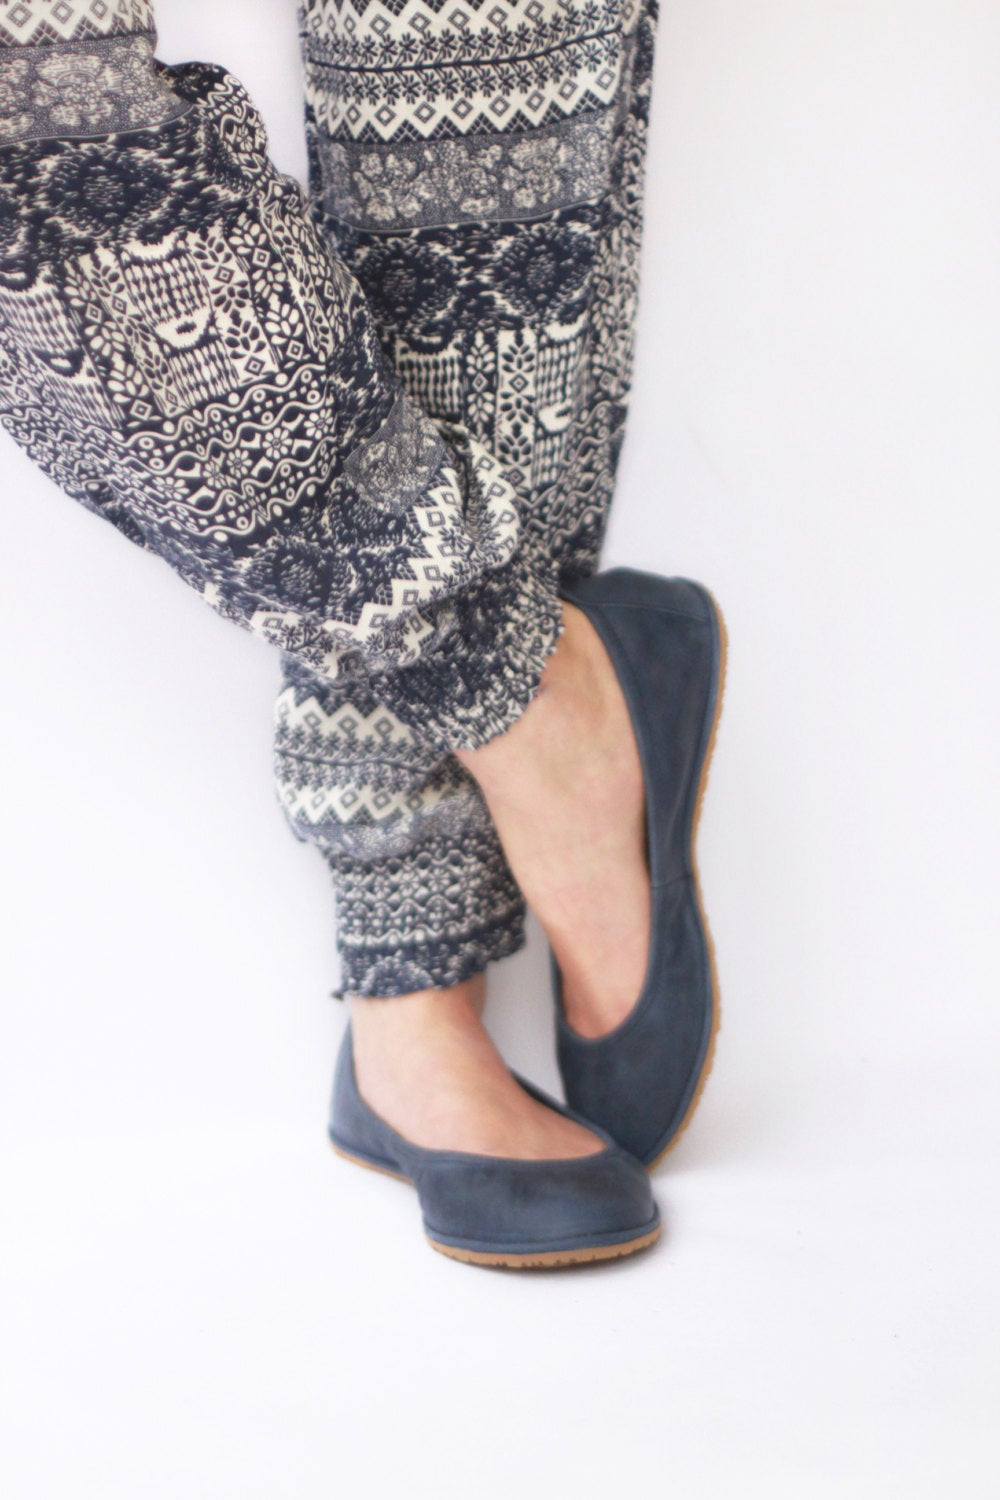 Image of Ballet flats - Eko in Navy Blue